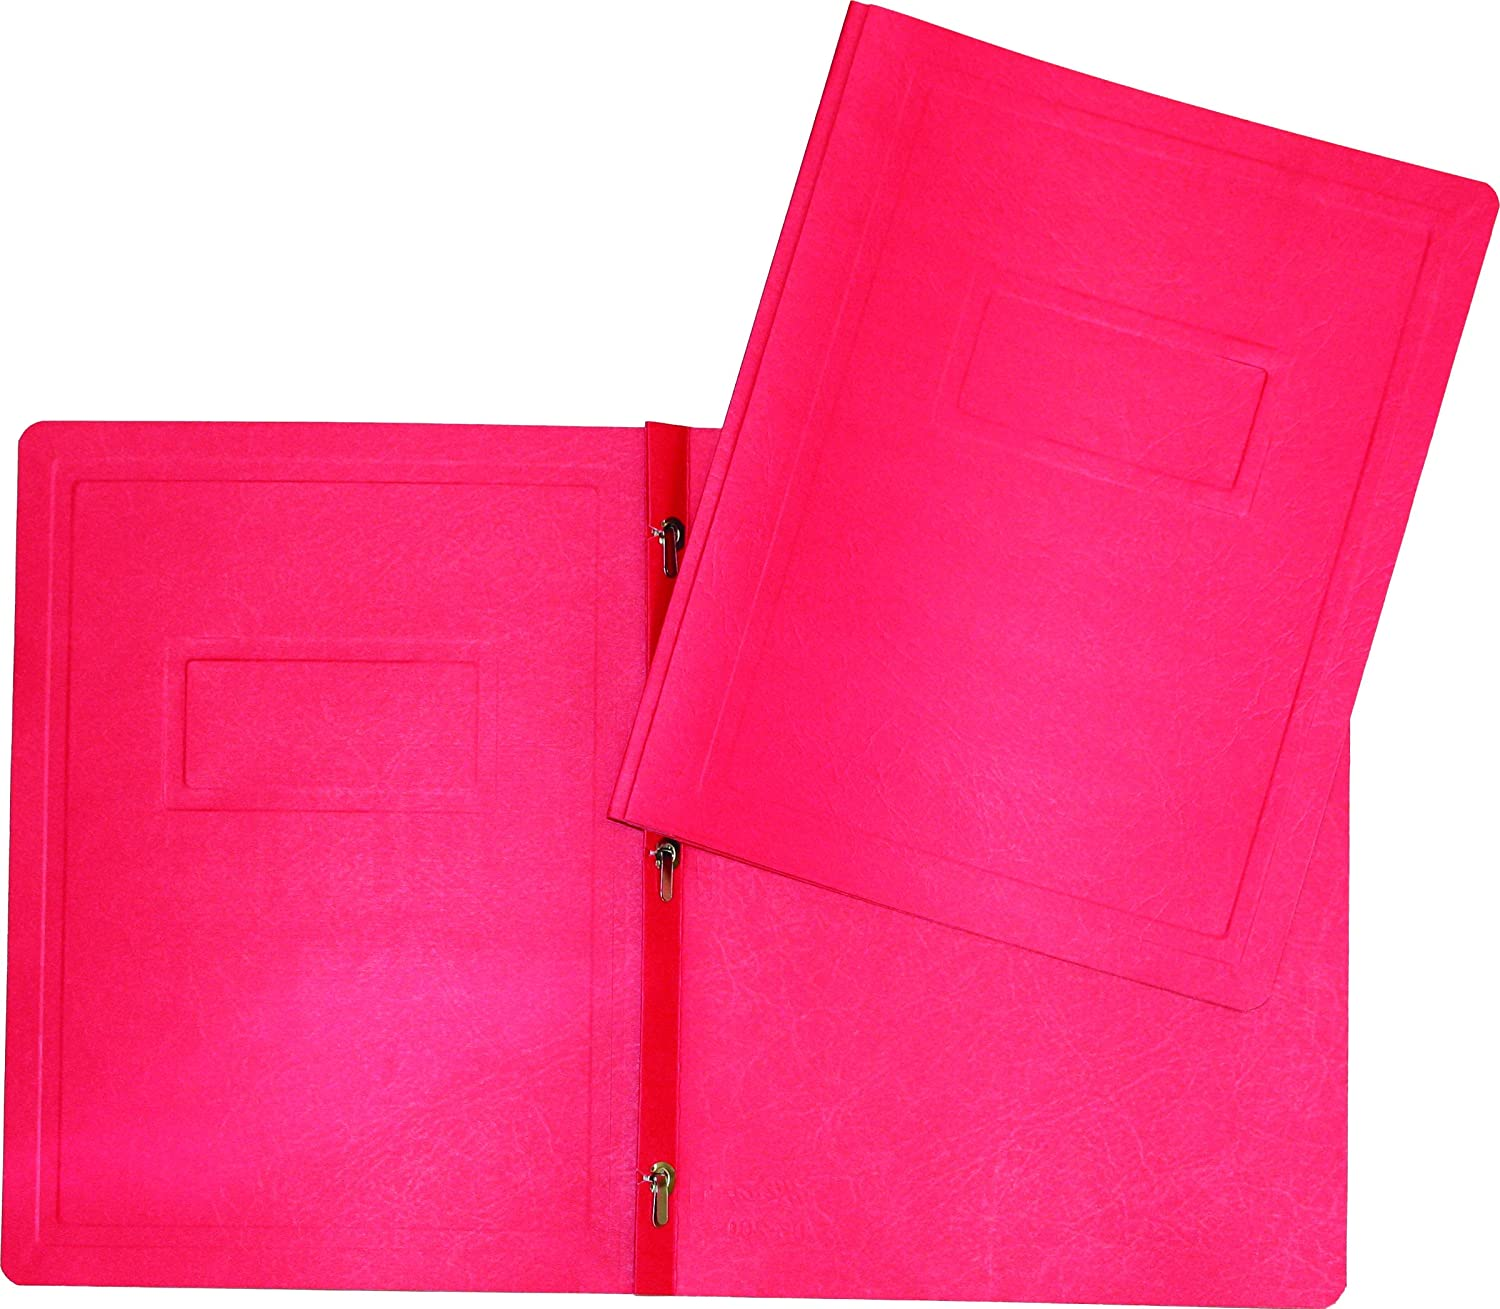 Hilroy 06237 3-Prong Report Cover, Red, 25 Per Pack